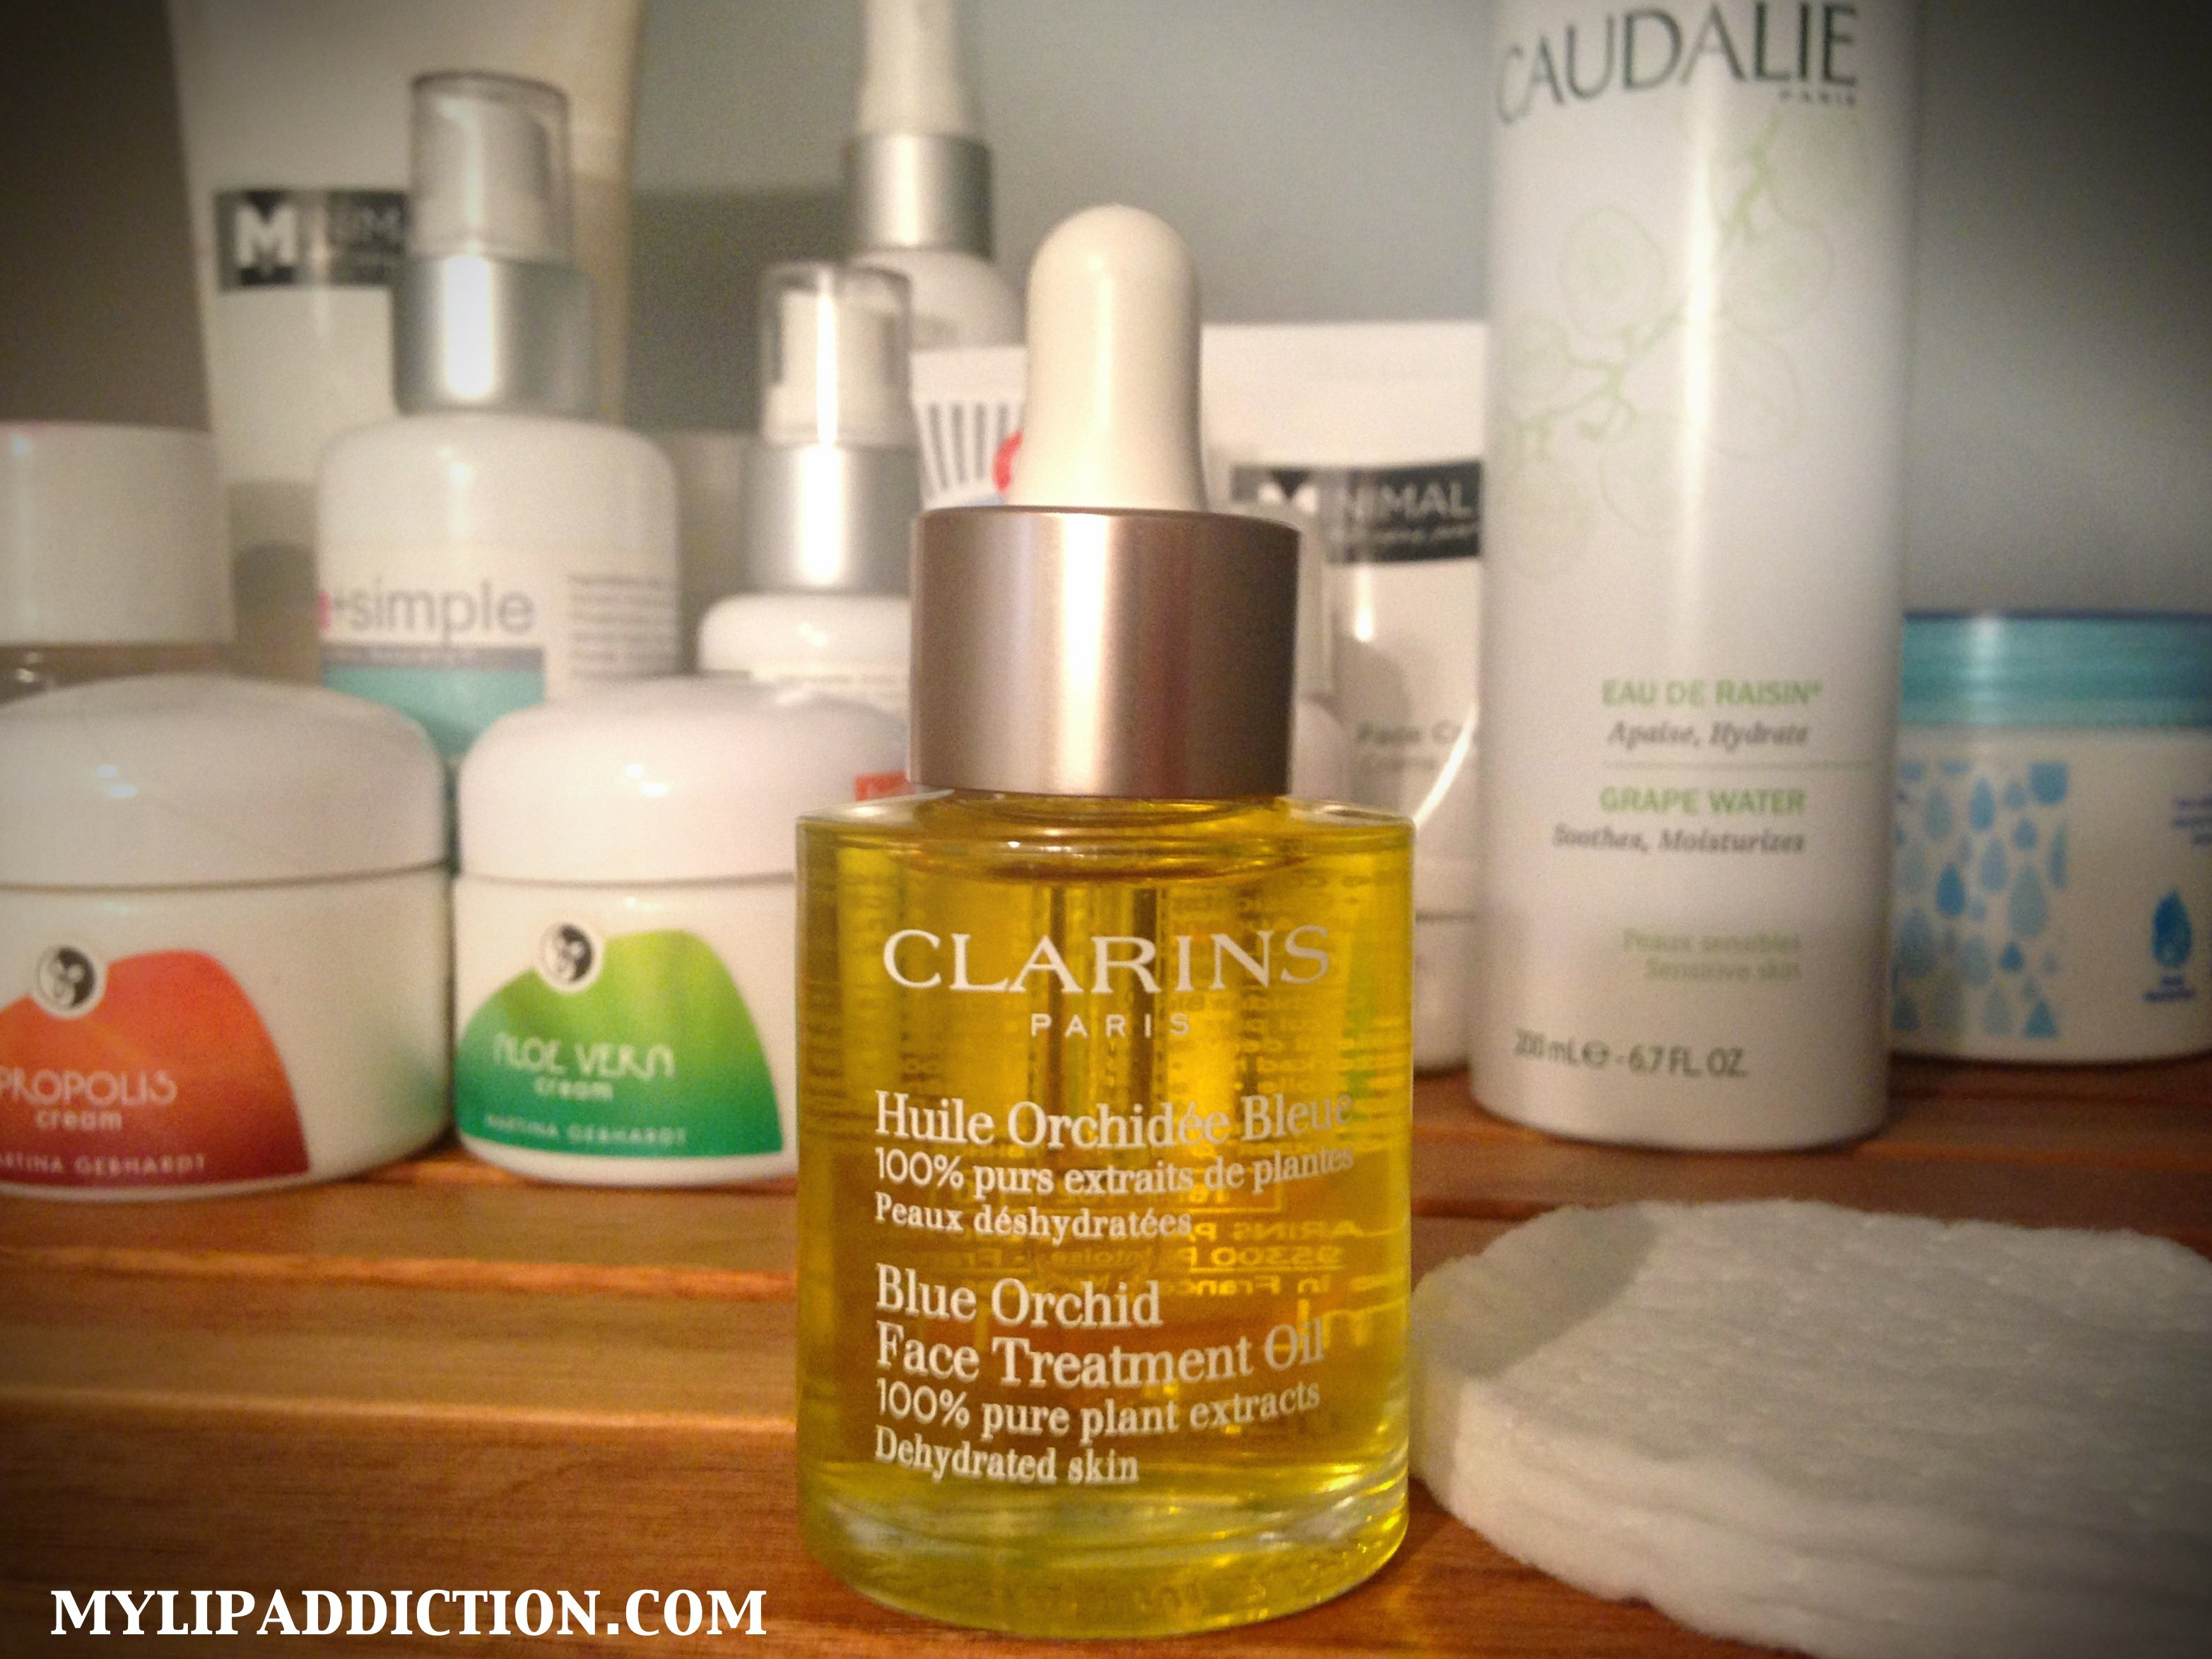 ROBYN: Clarins blue orchid ingredients